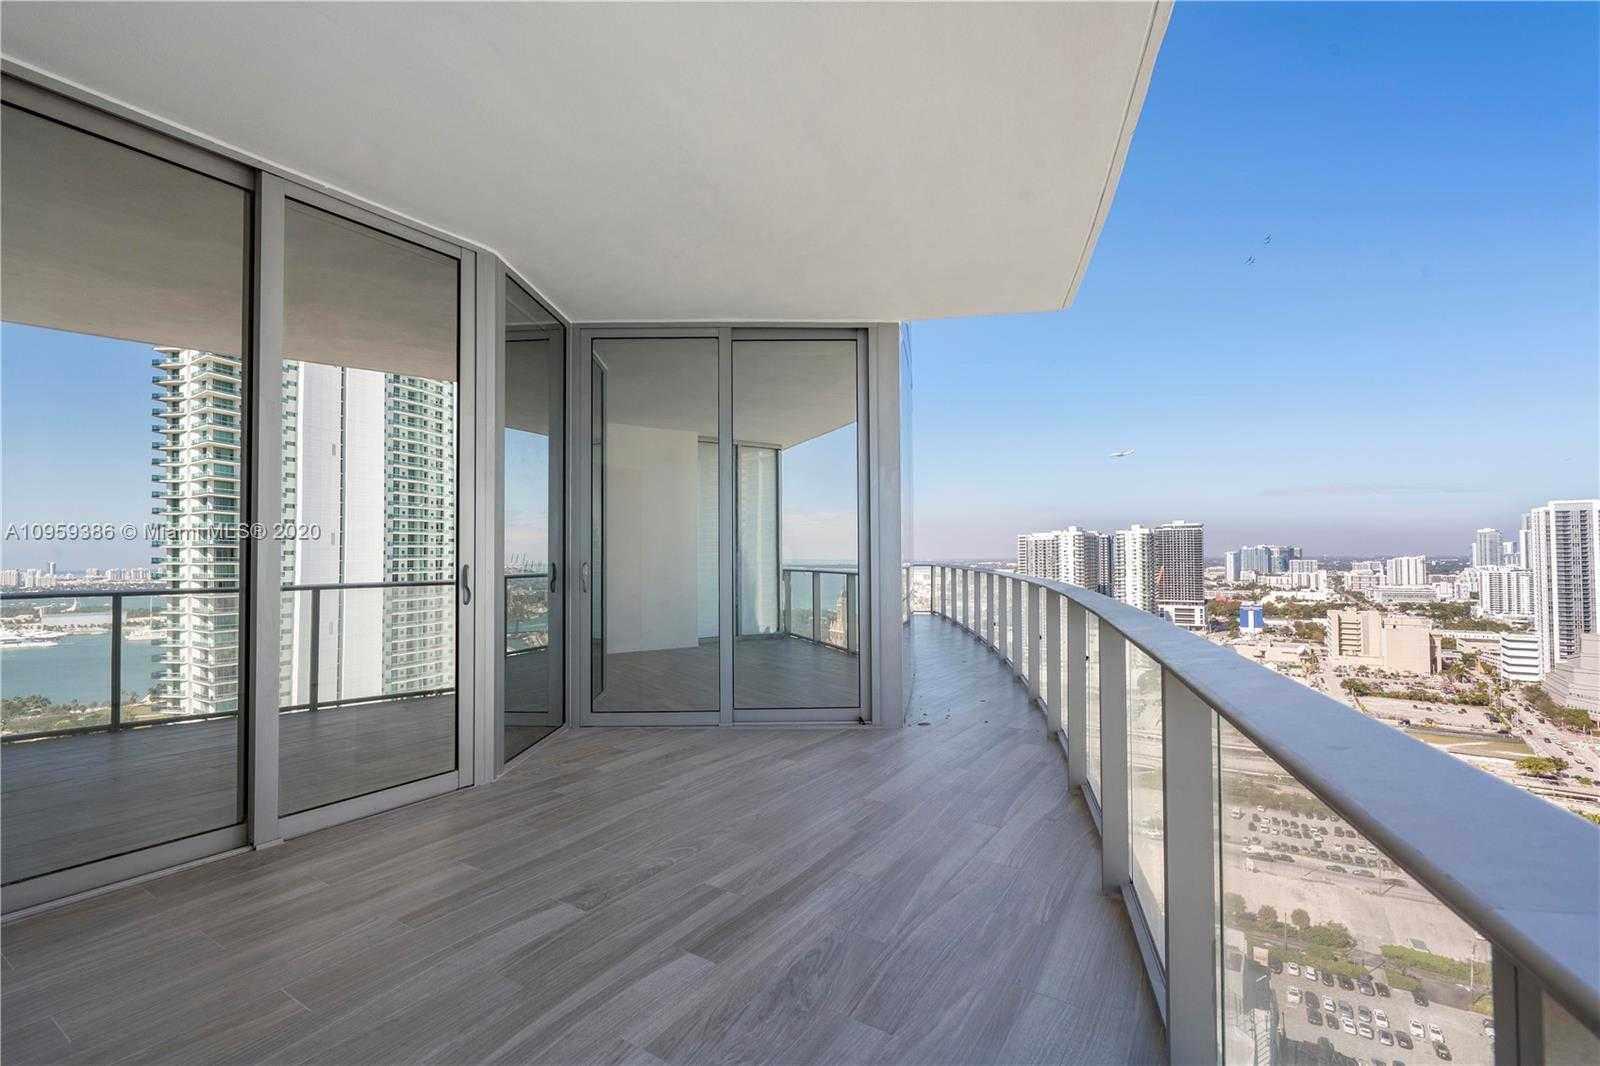 $1,200,000 - 2Br/3Ba -  for Sale in Paramount Miami Worldcent, Miami